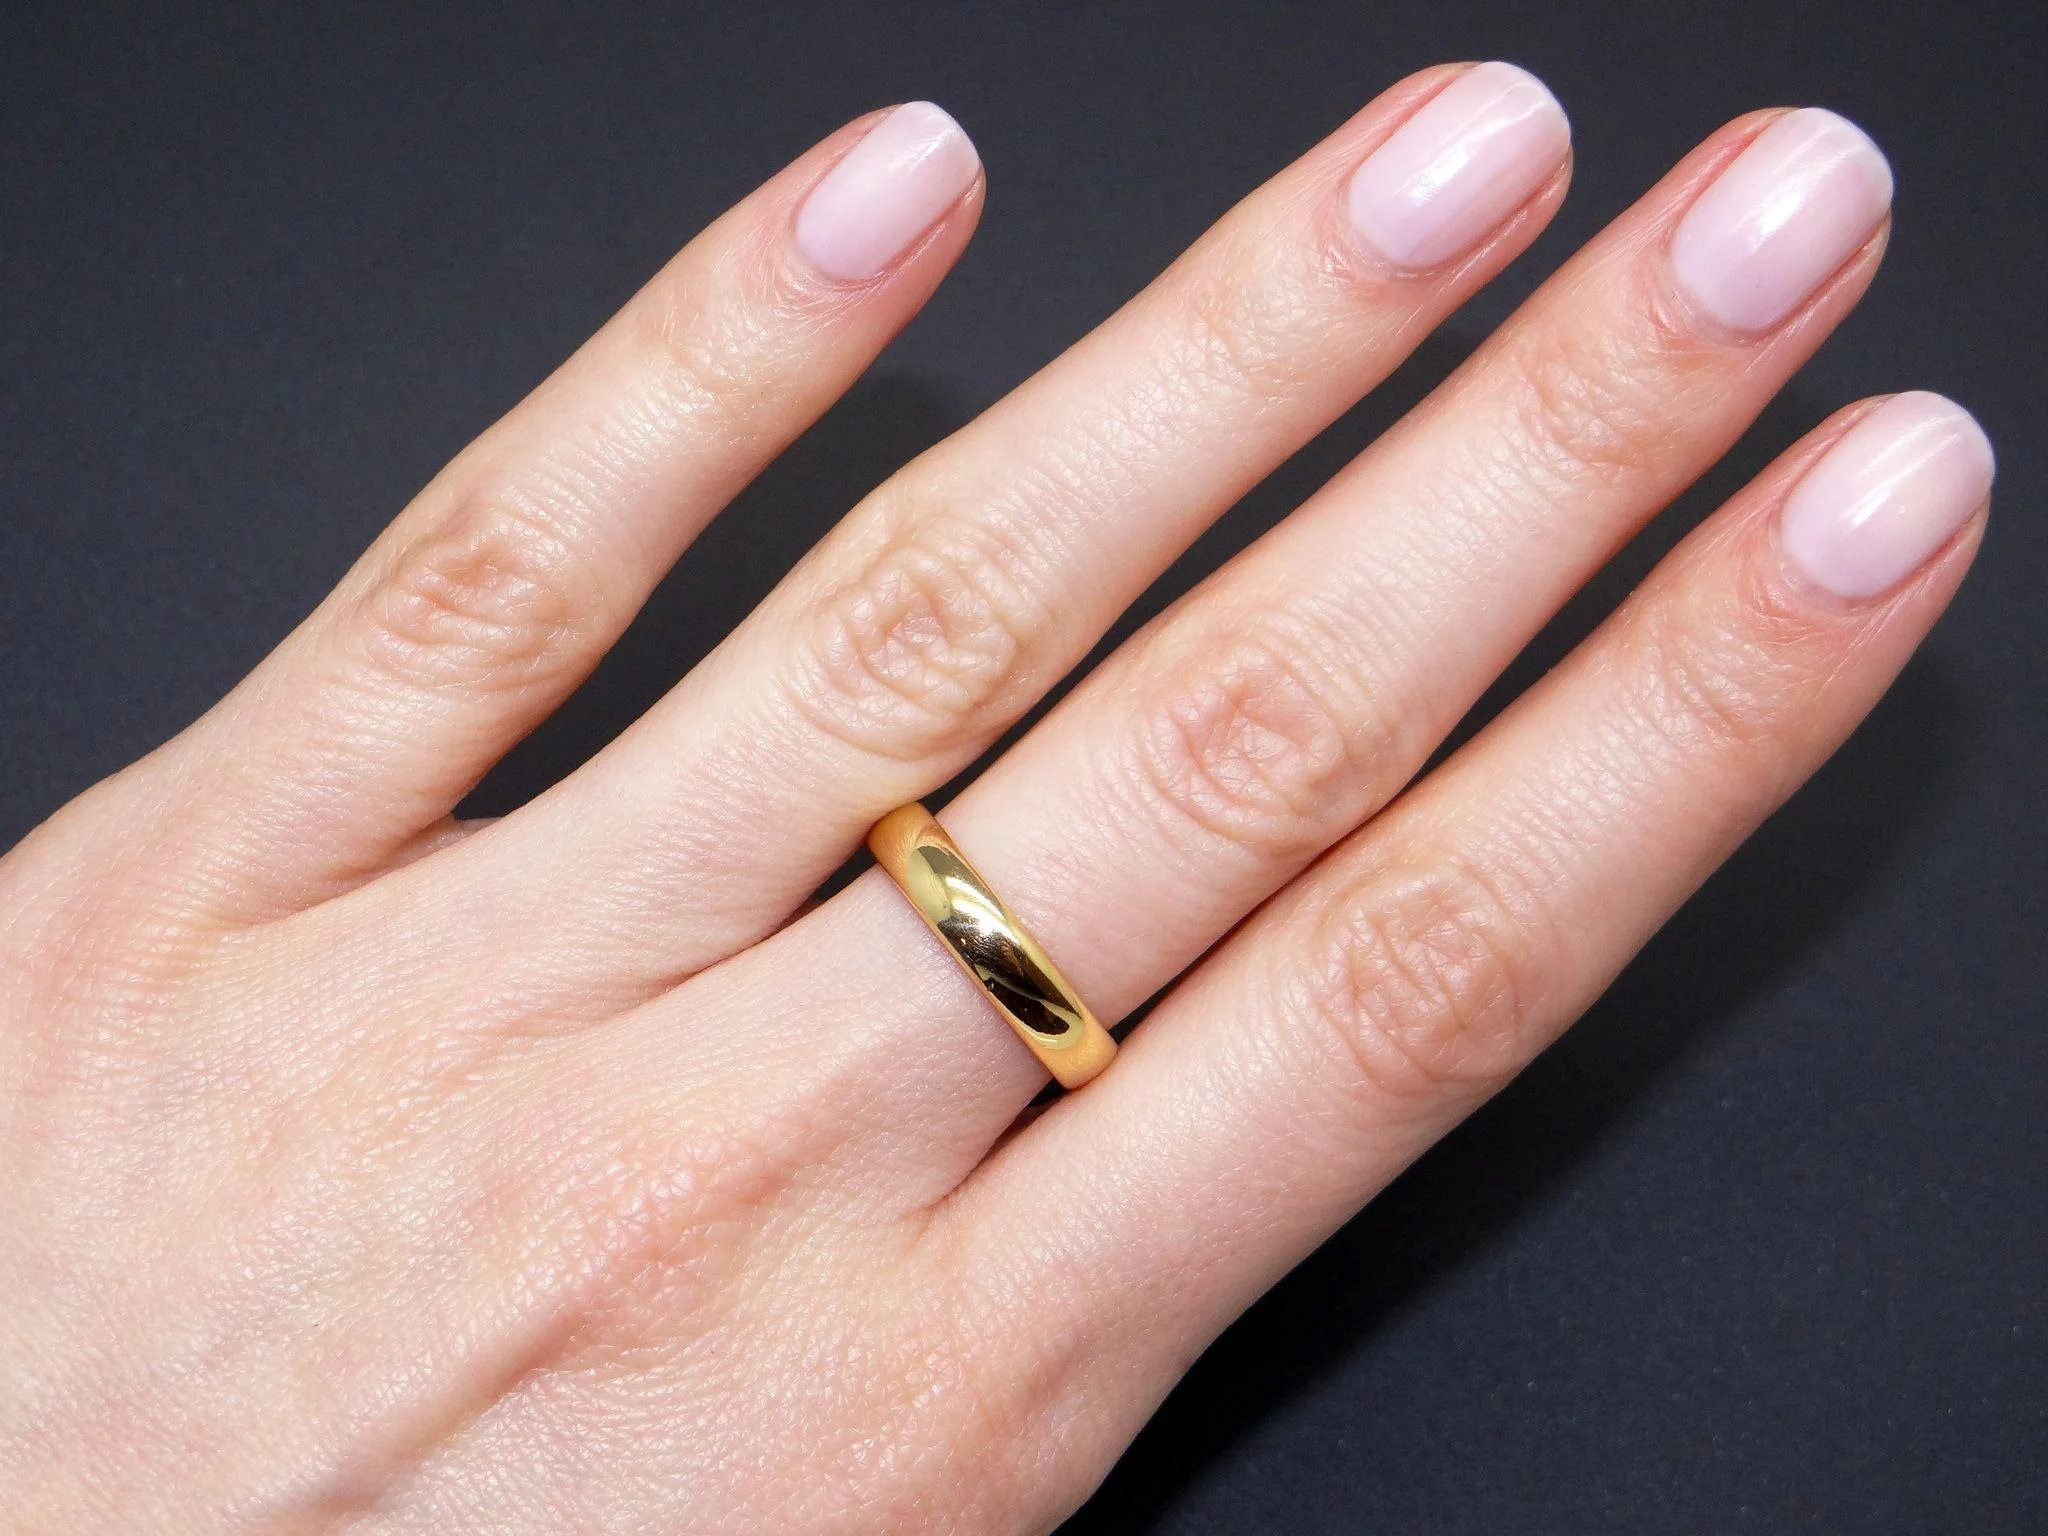 Vintage Tiffany & Co 22k Yellow Gold 4mm Wedding Band Ring Size 5.5 ...